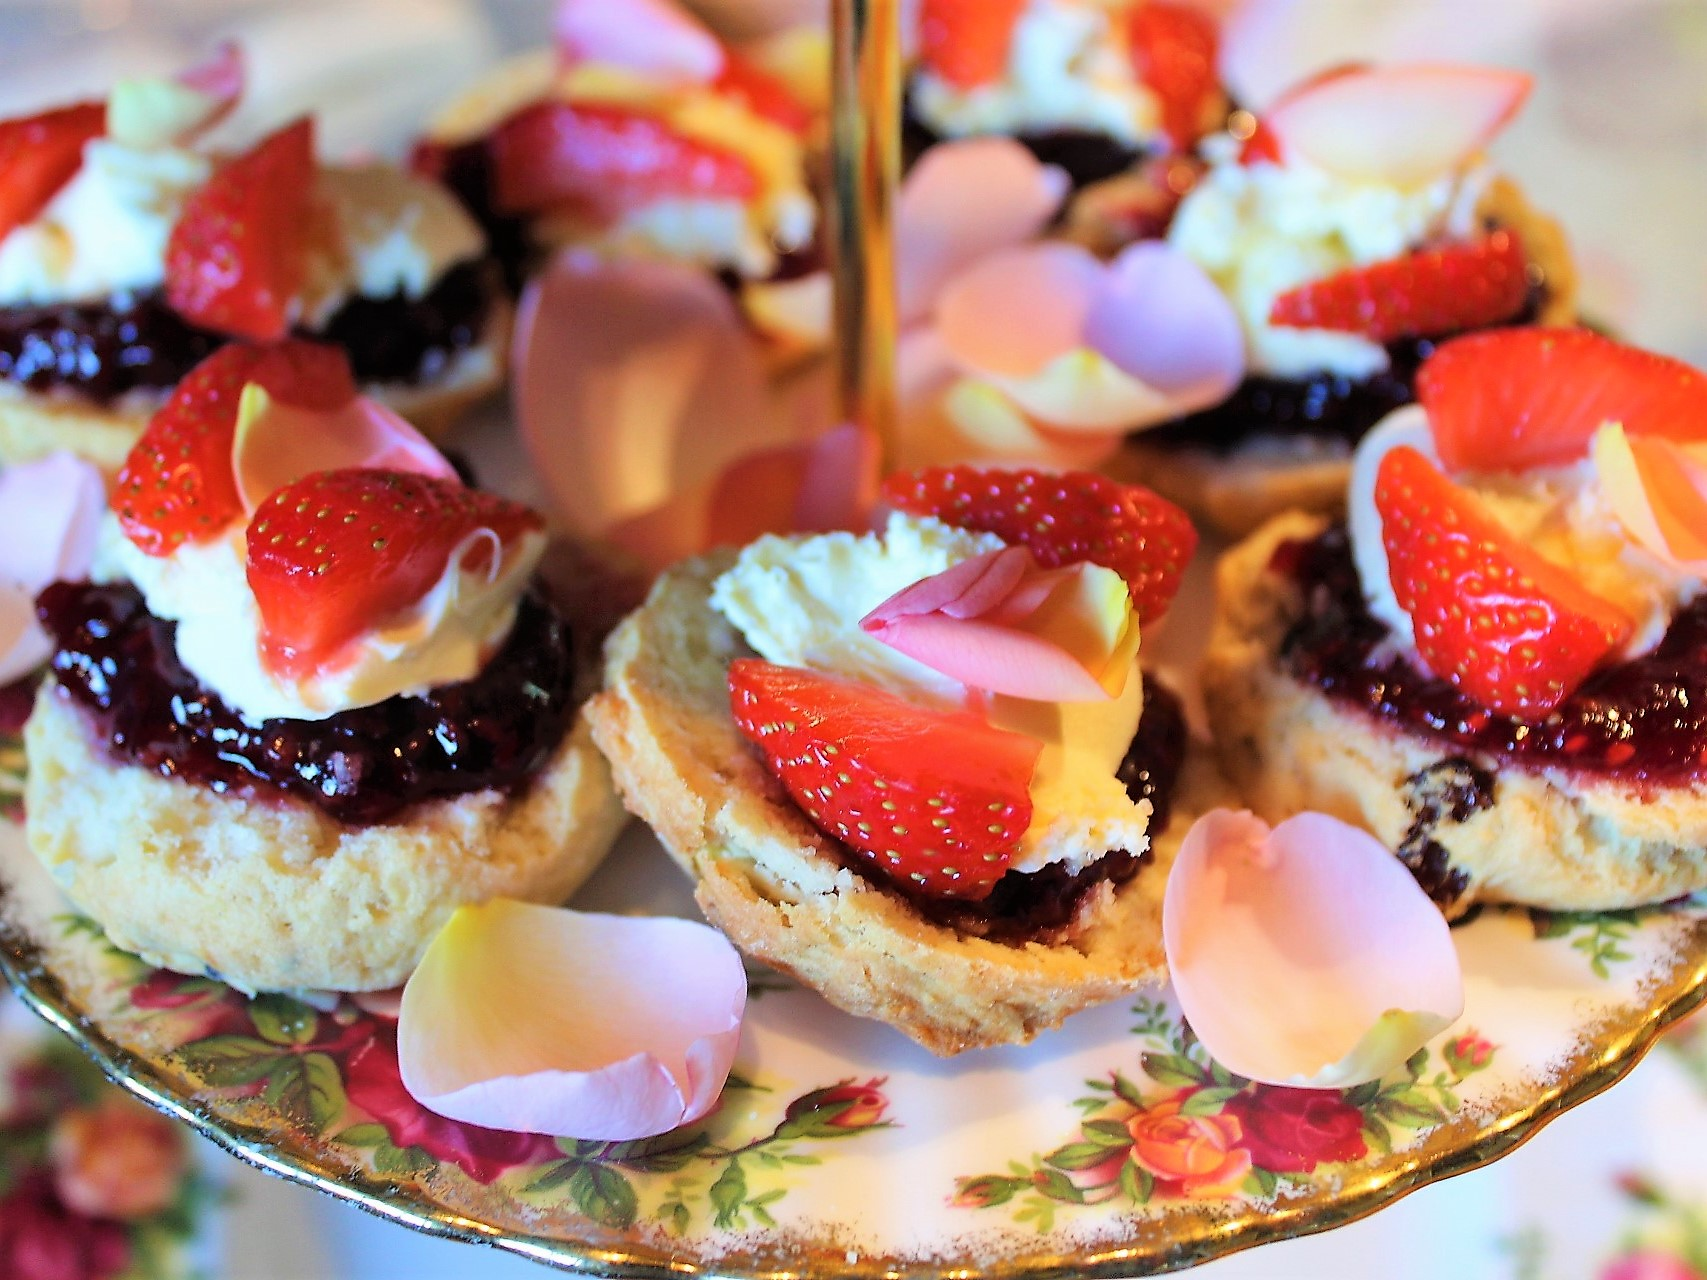 Enjoy making and eating delicious scones